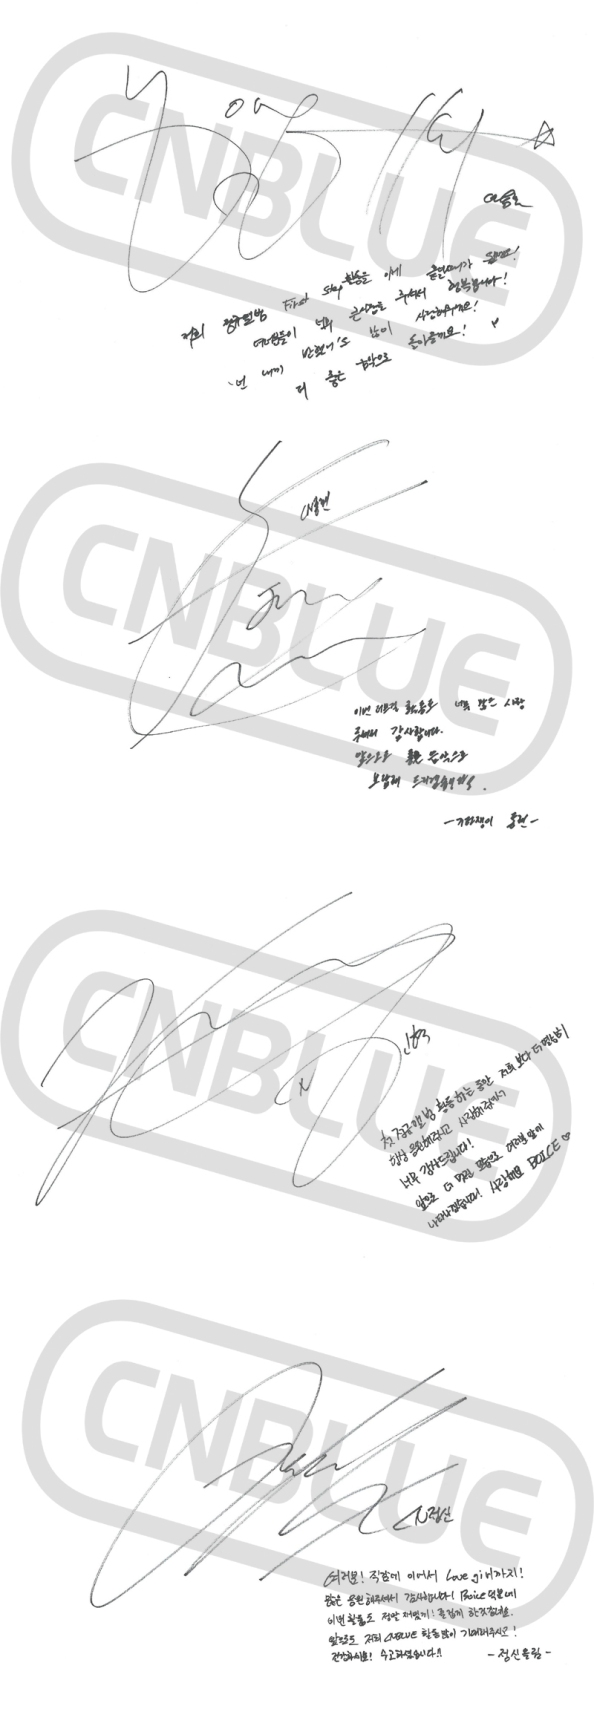 CNBLUE_FirstStepMessage